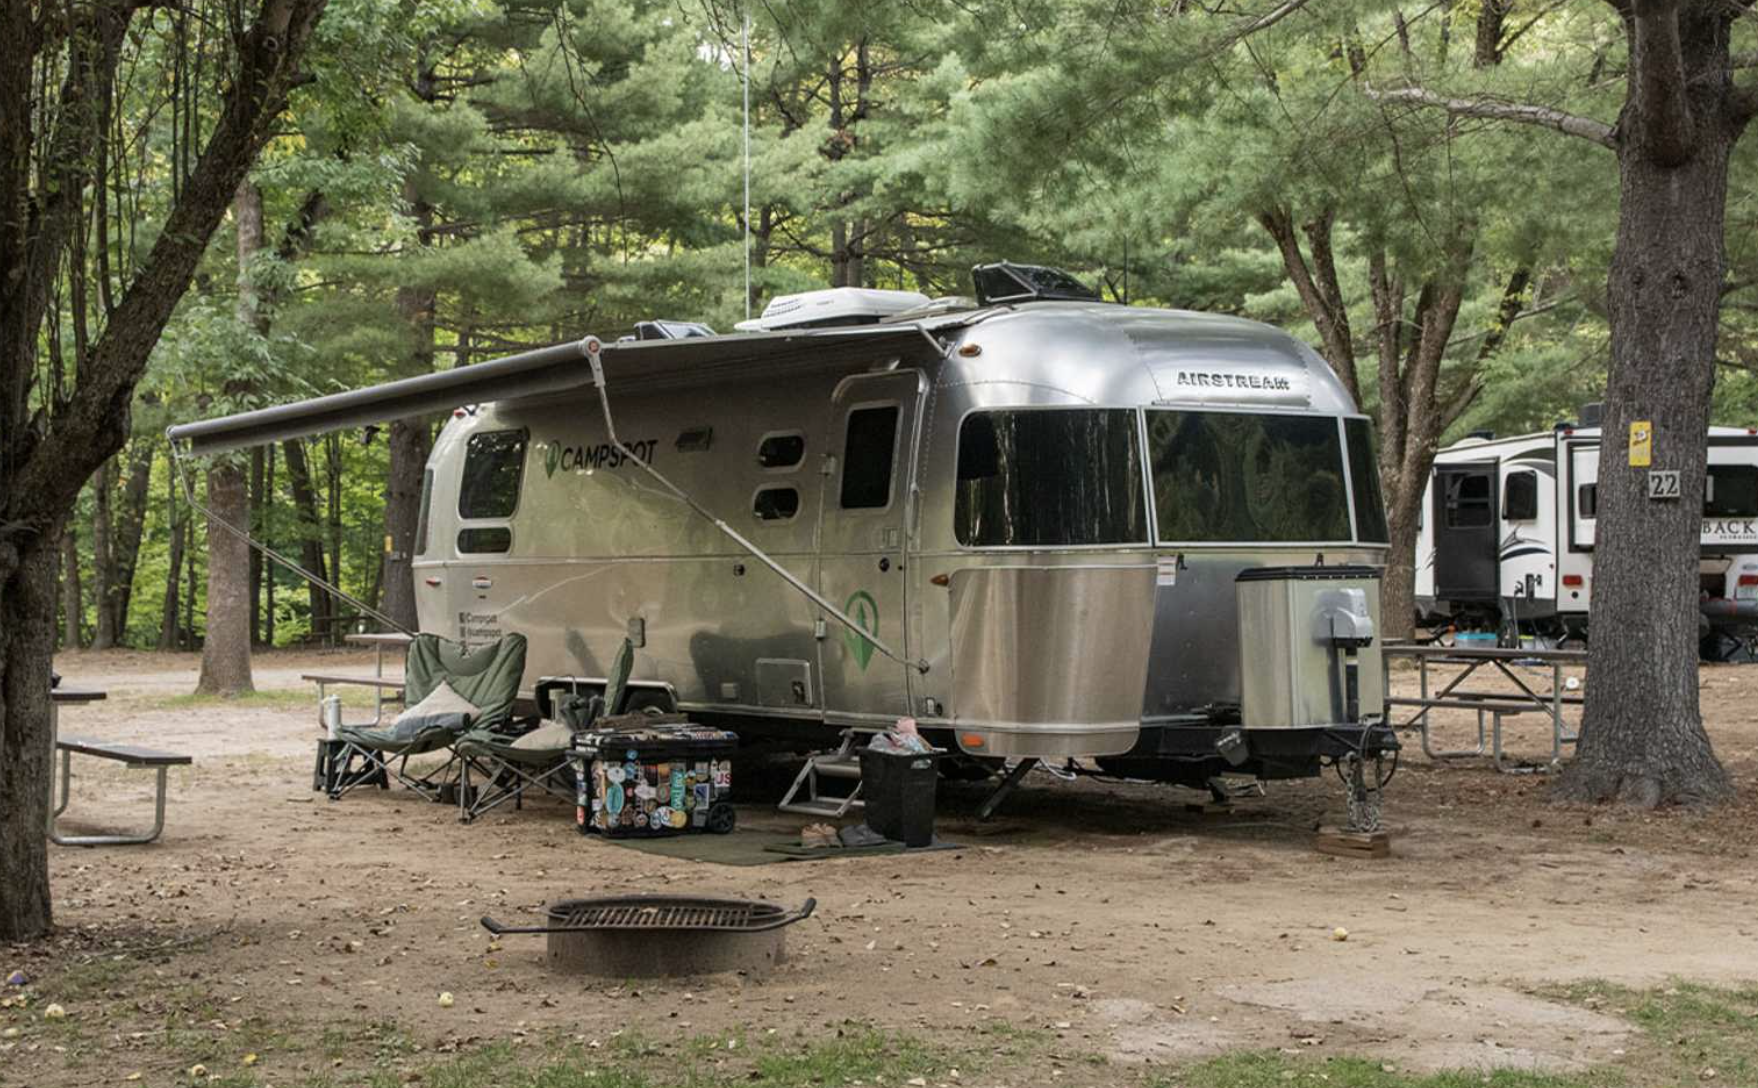 Airstream parked at Yogi Bear Jellystone campground in the woods